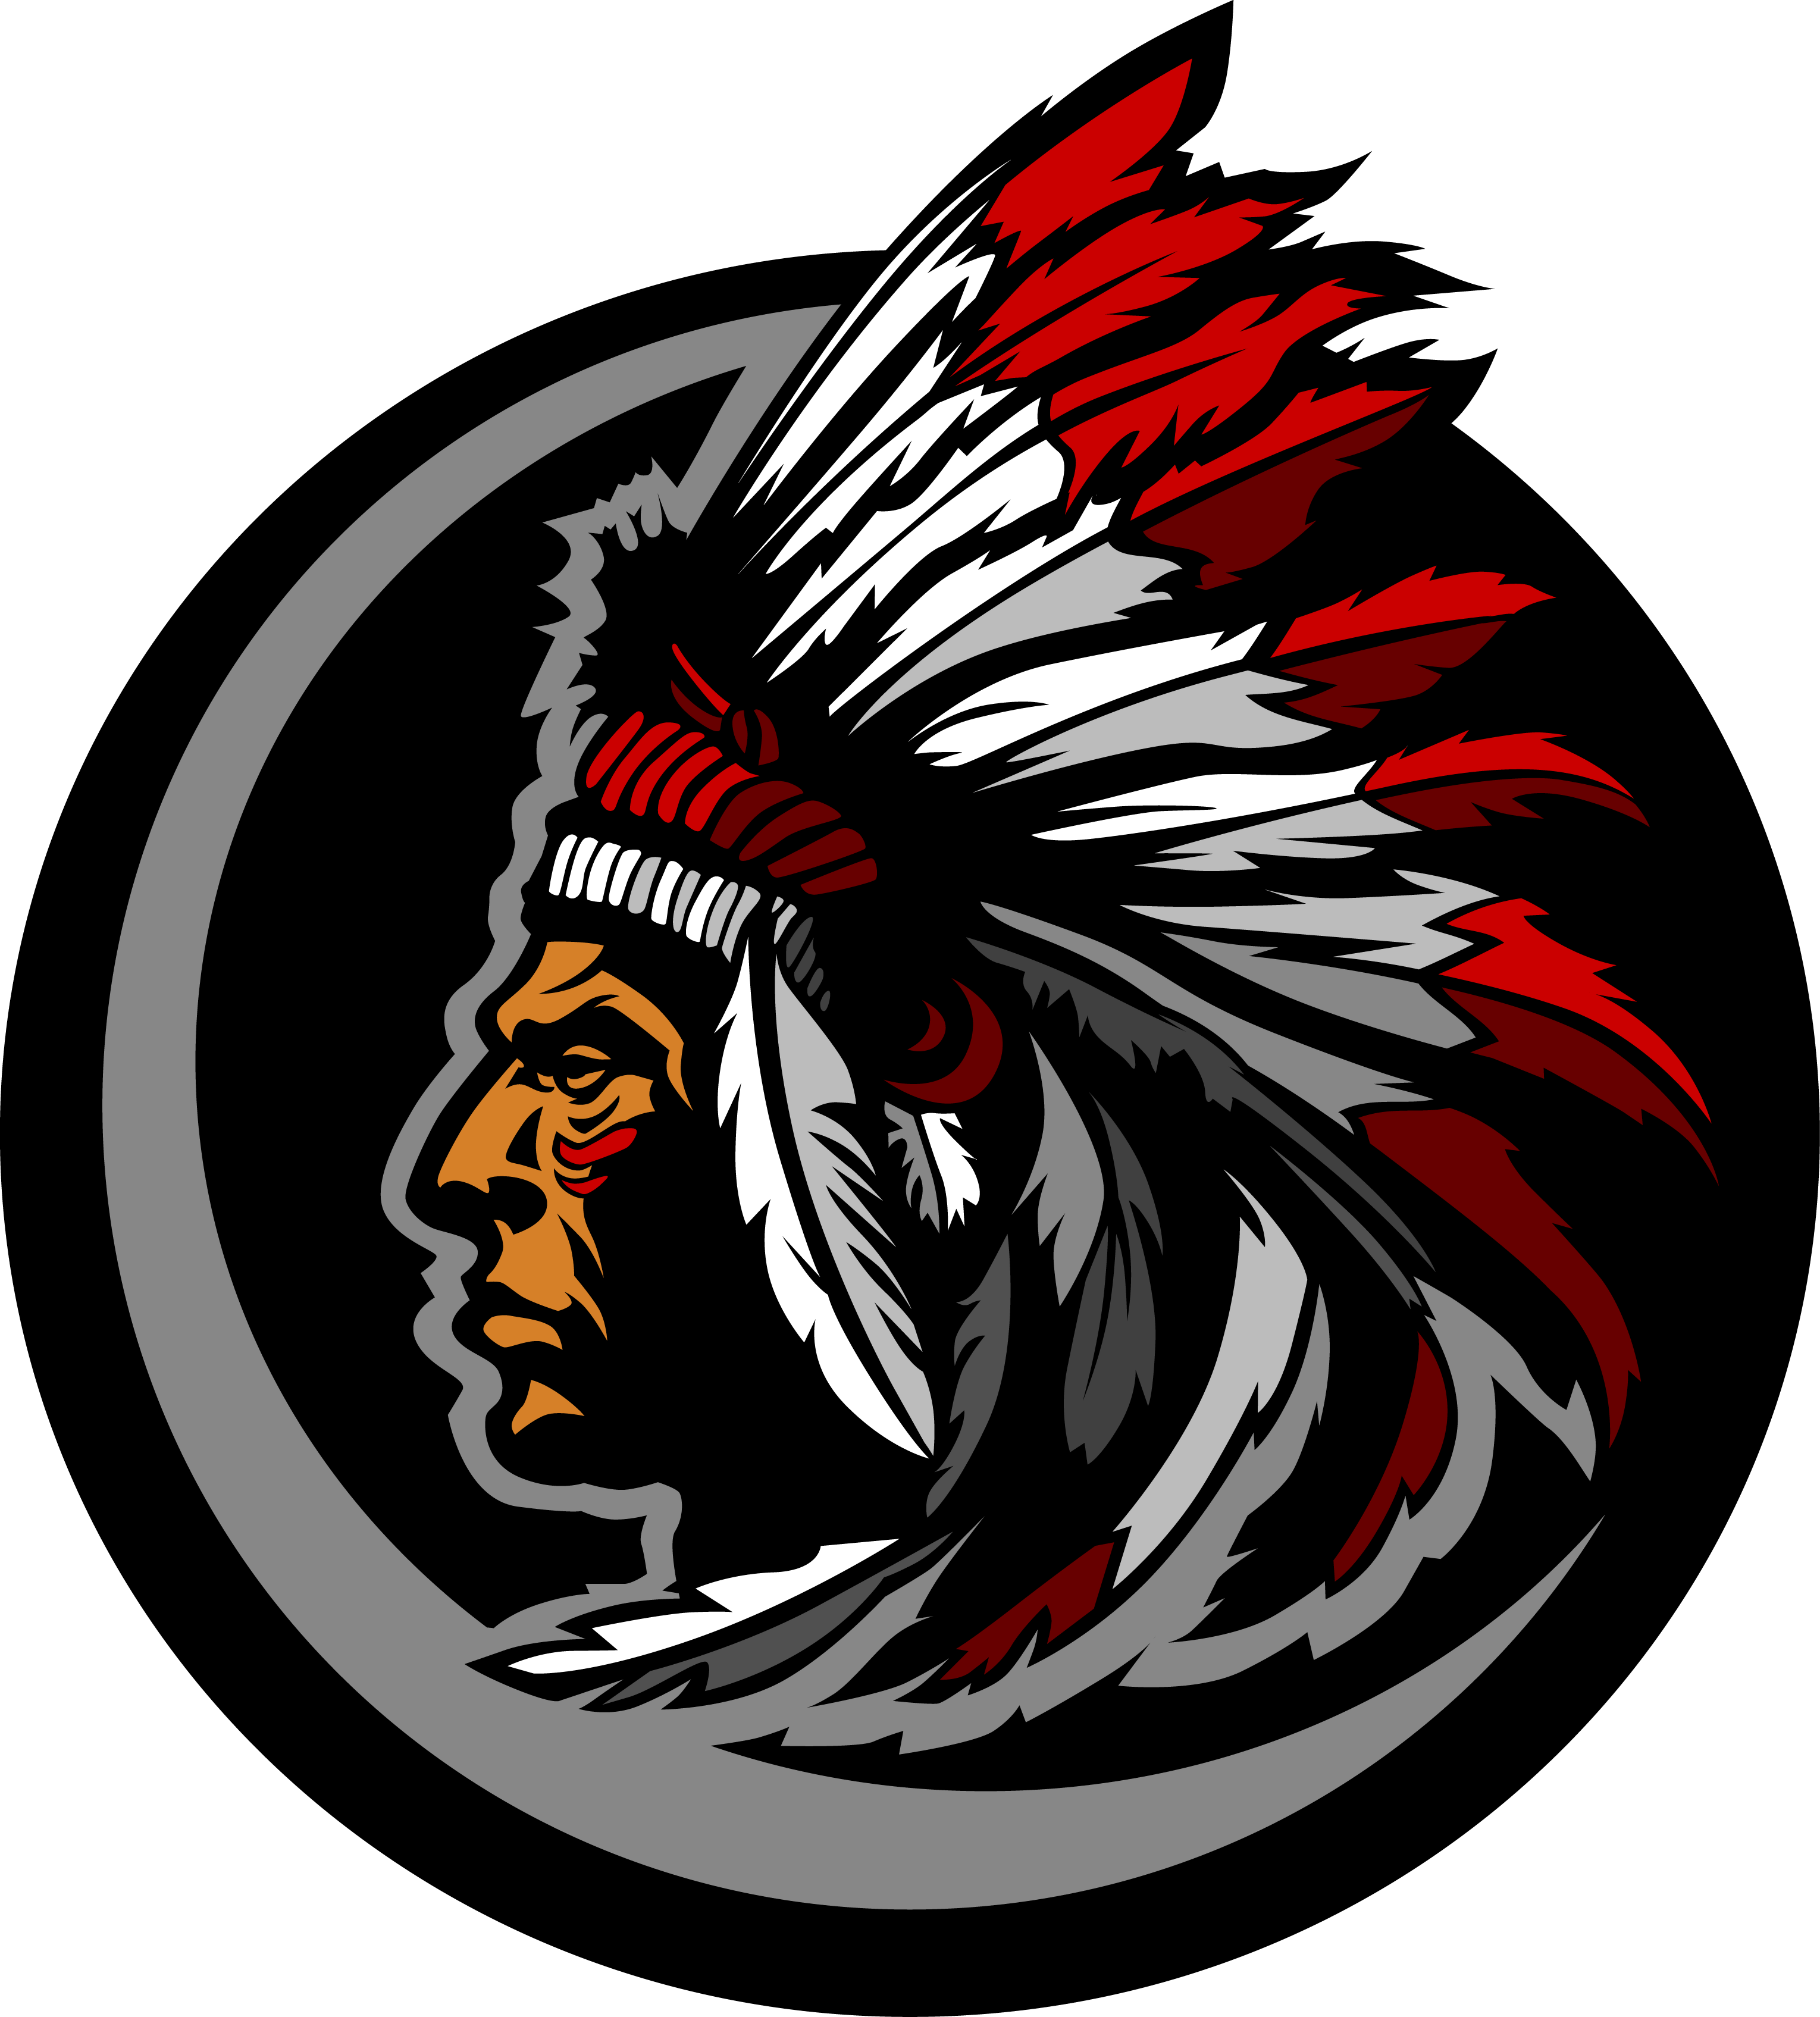 wyoming central school mascot of a native american chief